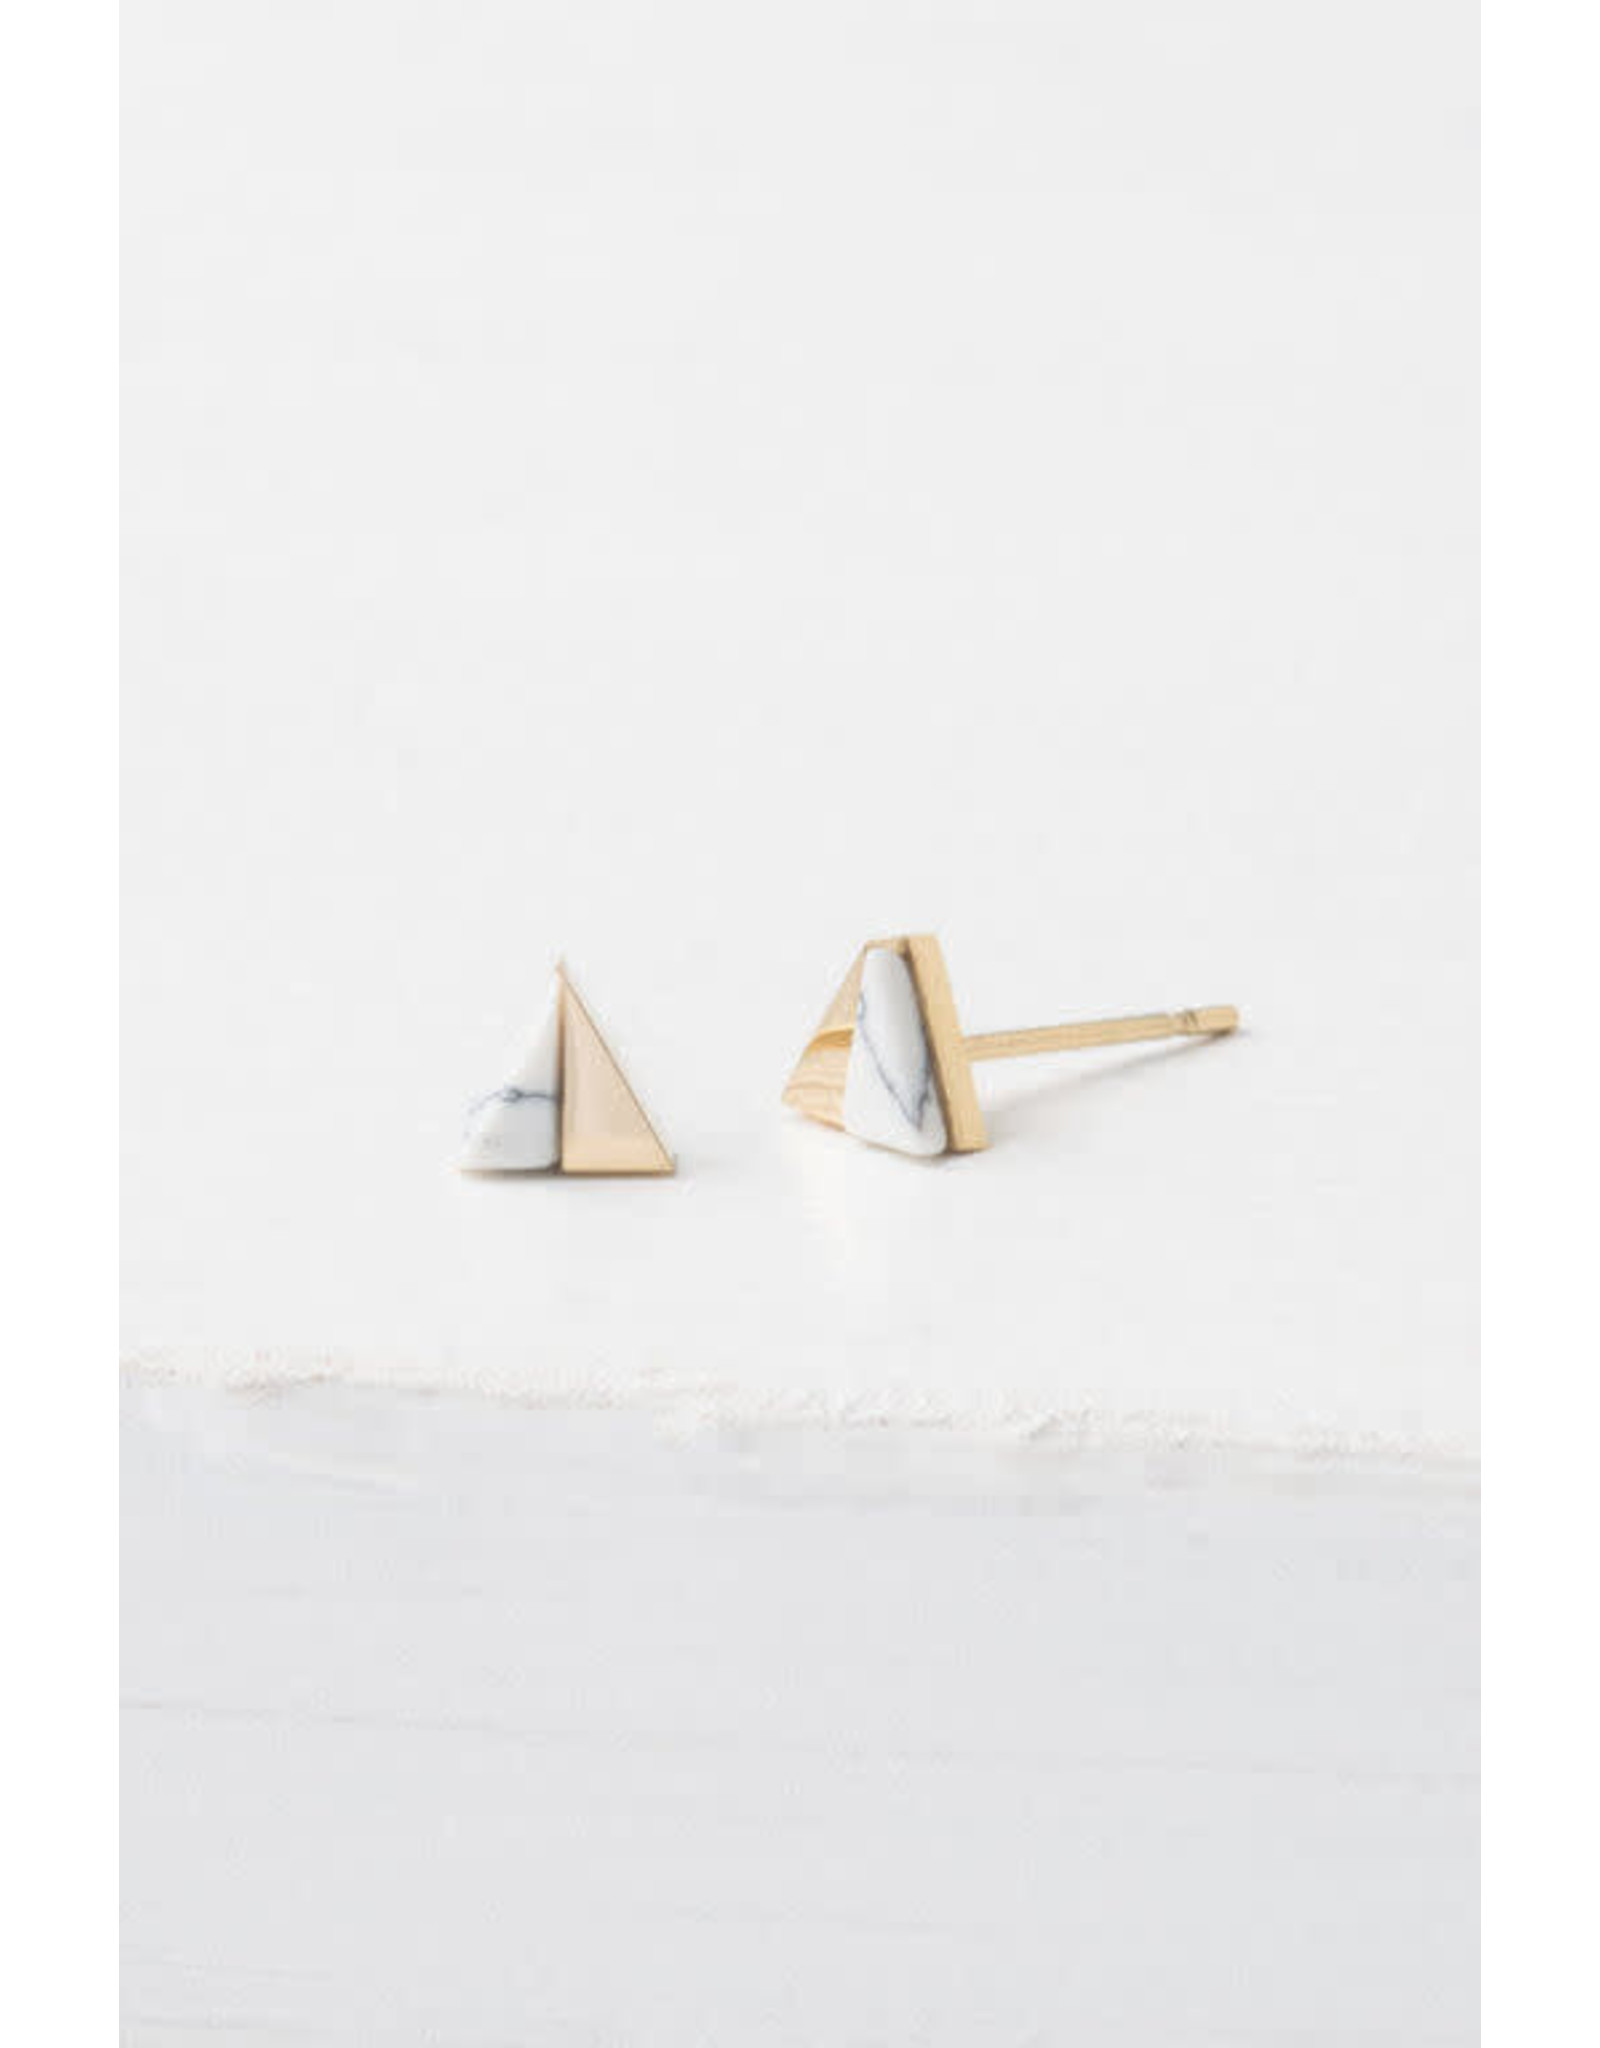 Cassia Gold and White Stud Earrings